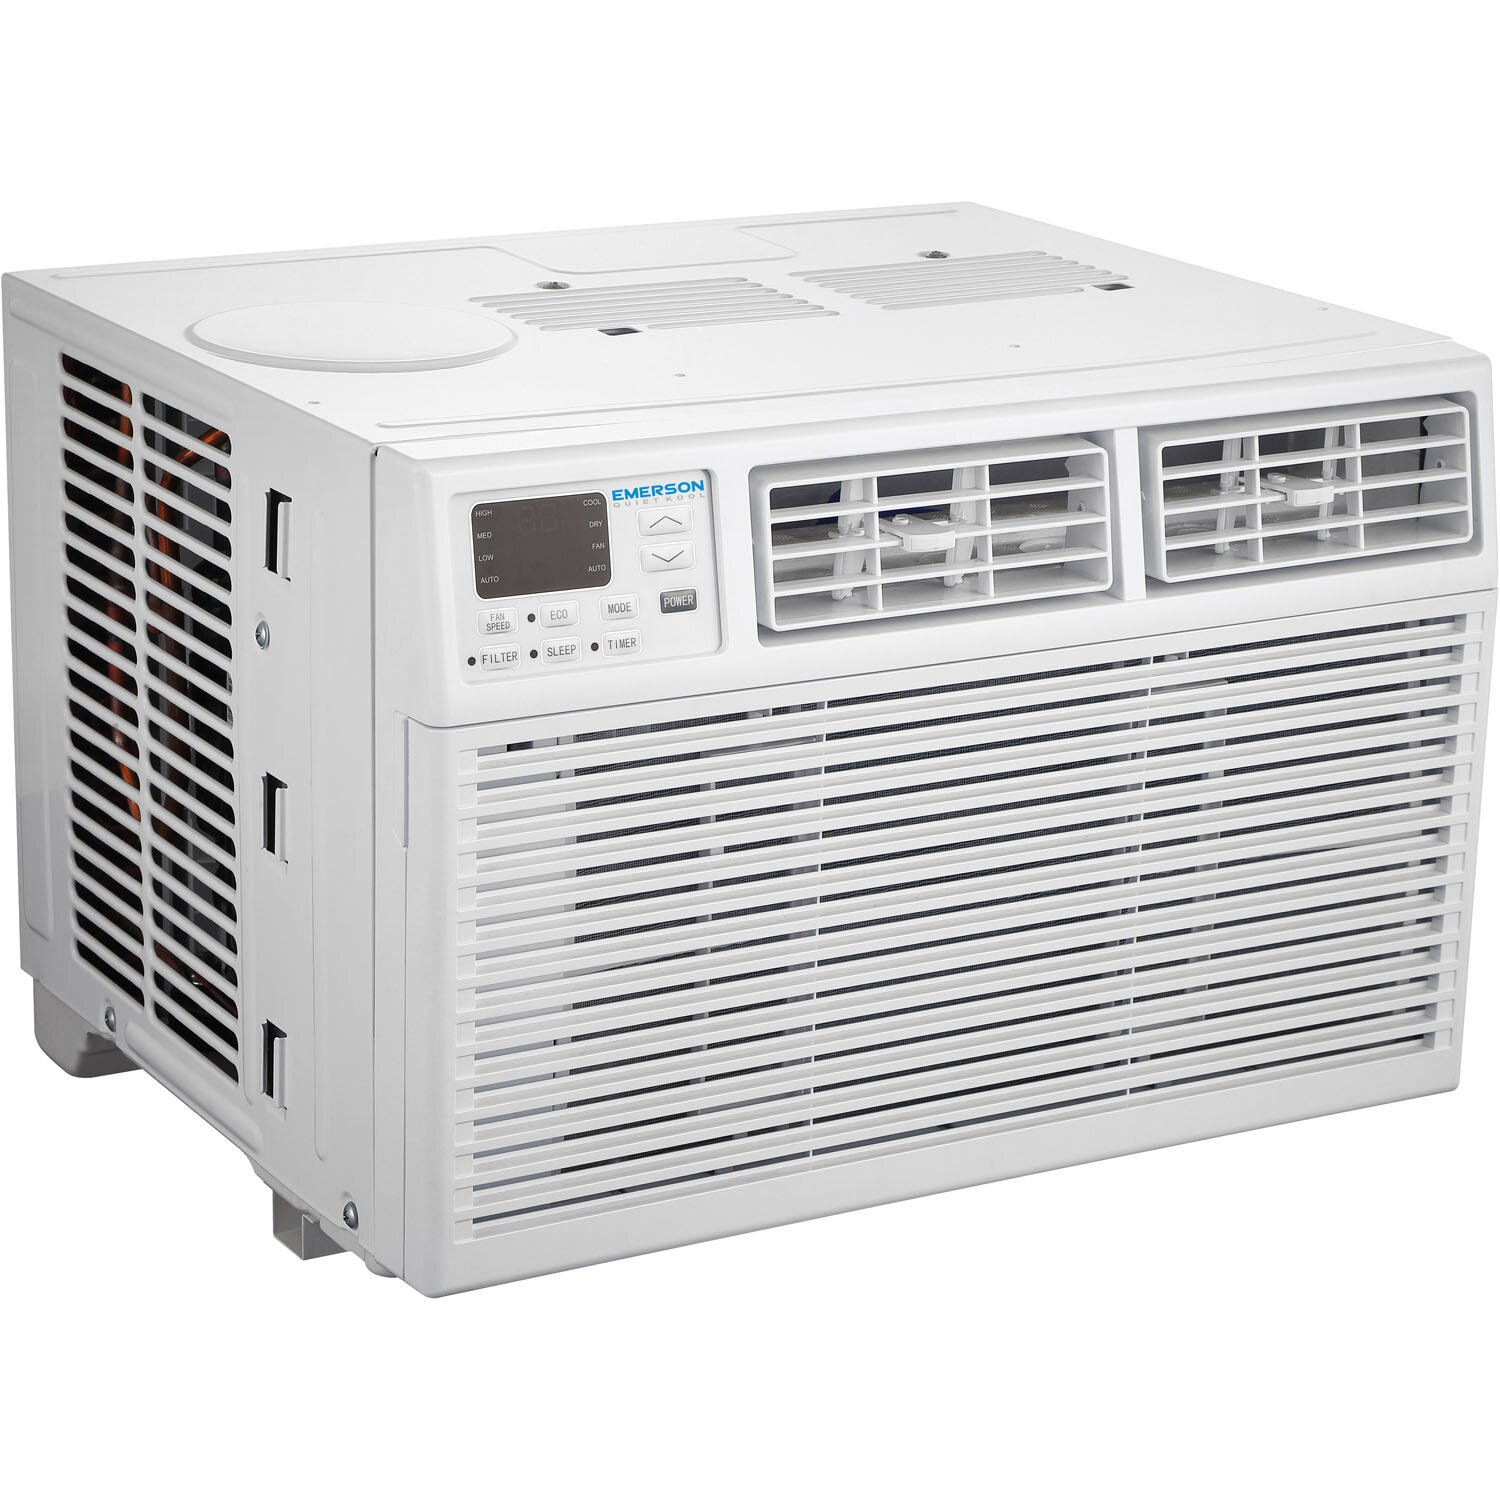 Emerson quiet kool emerson quiet kool 12 000 btu window for 12000 btu window air conditioner room size